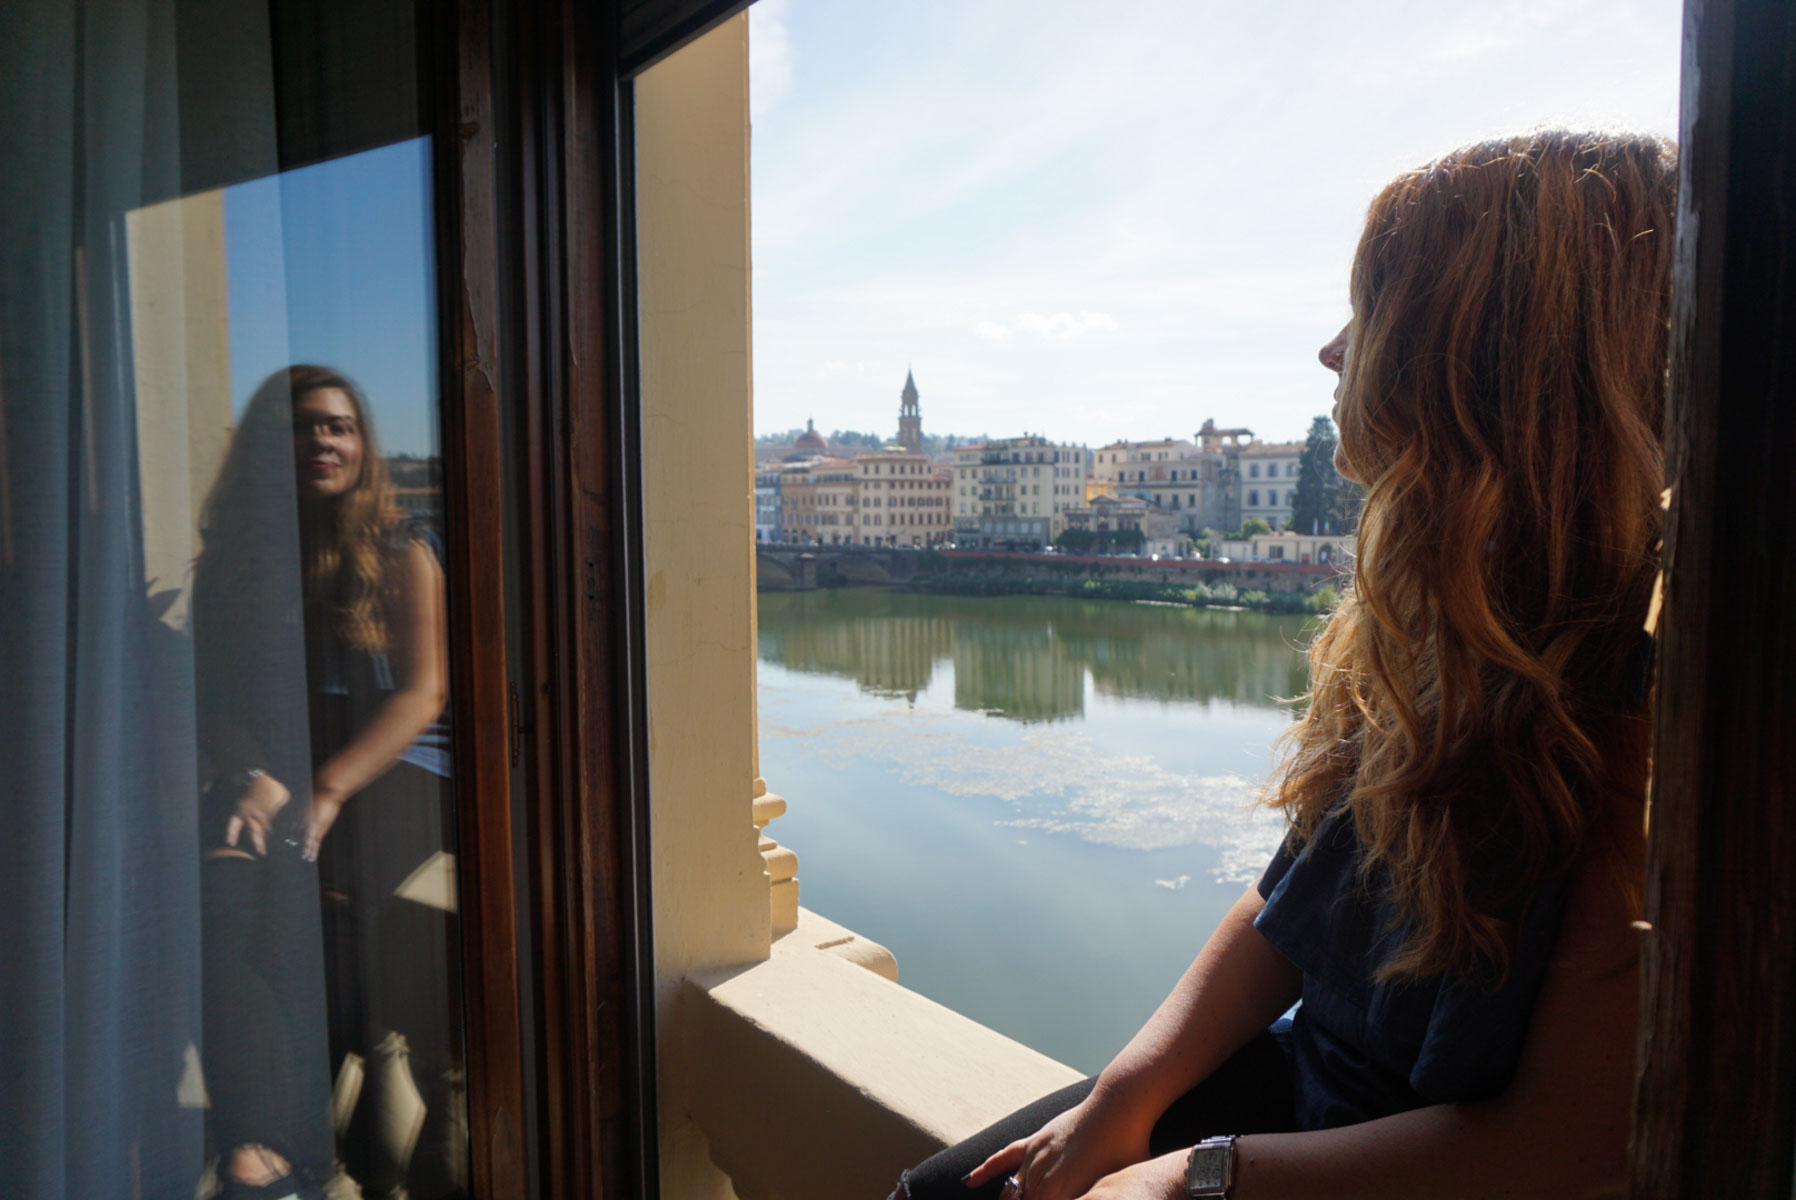 This was my first look at Italy, and I was super impressed.